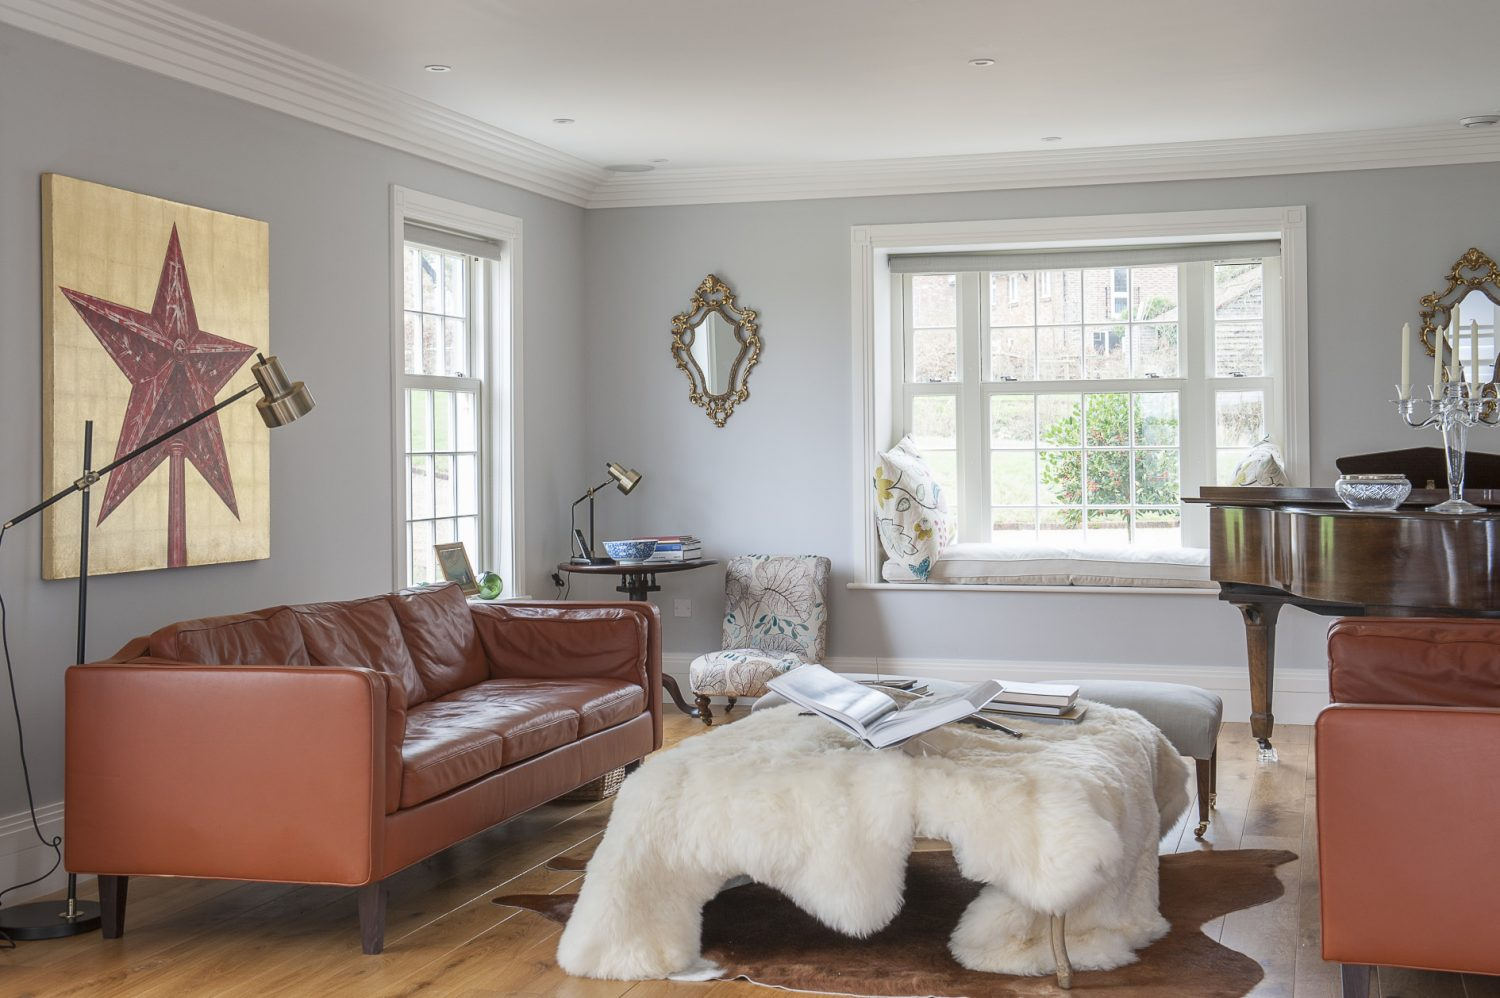 The opposite end of the living room-cum-drawing room has a different feel; perhaps more 'rustic modern', with luxurious sheepskins and retro leather sofas